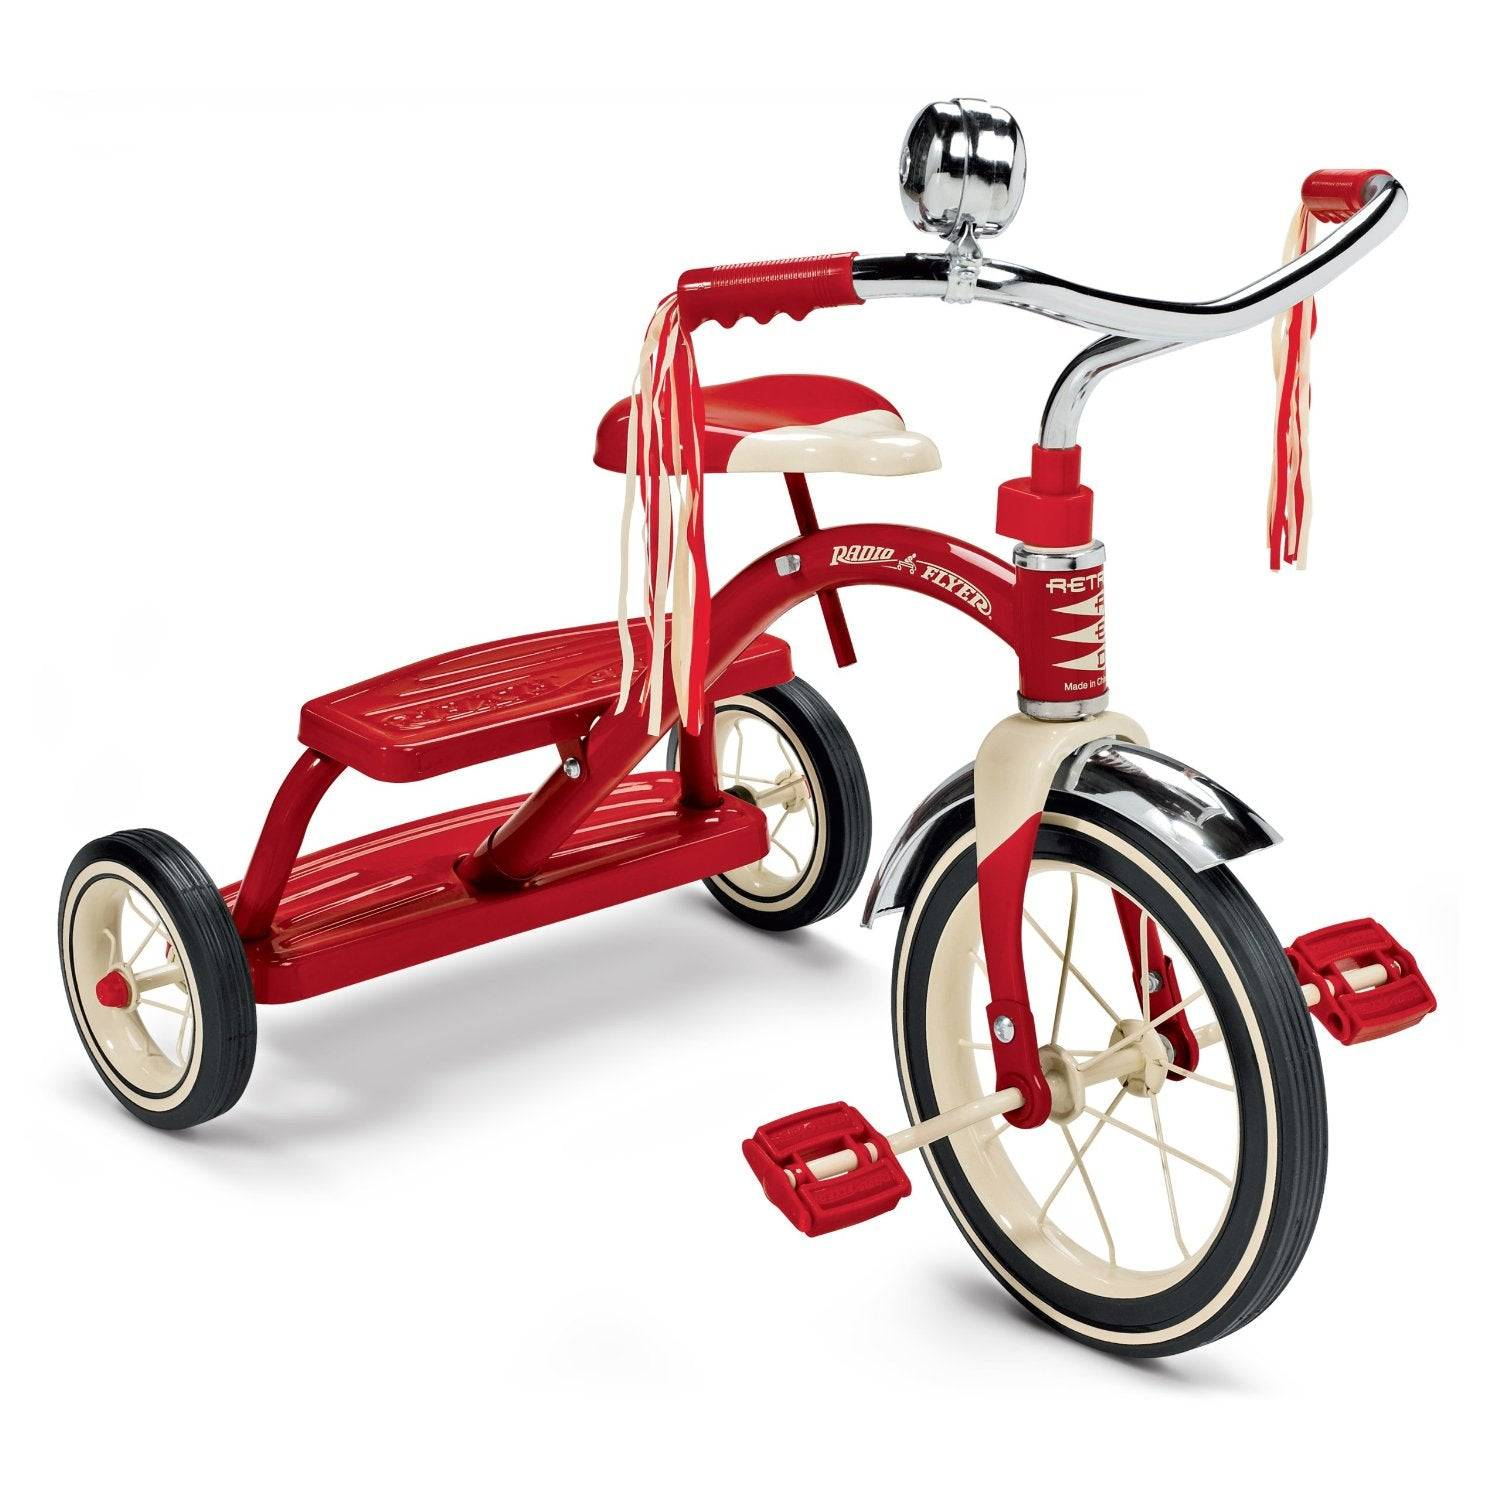 Radio Flyer 33 Classic Red Dual-deck Tricycle, 12-inch